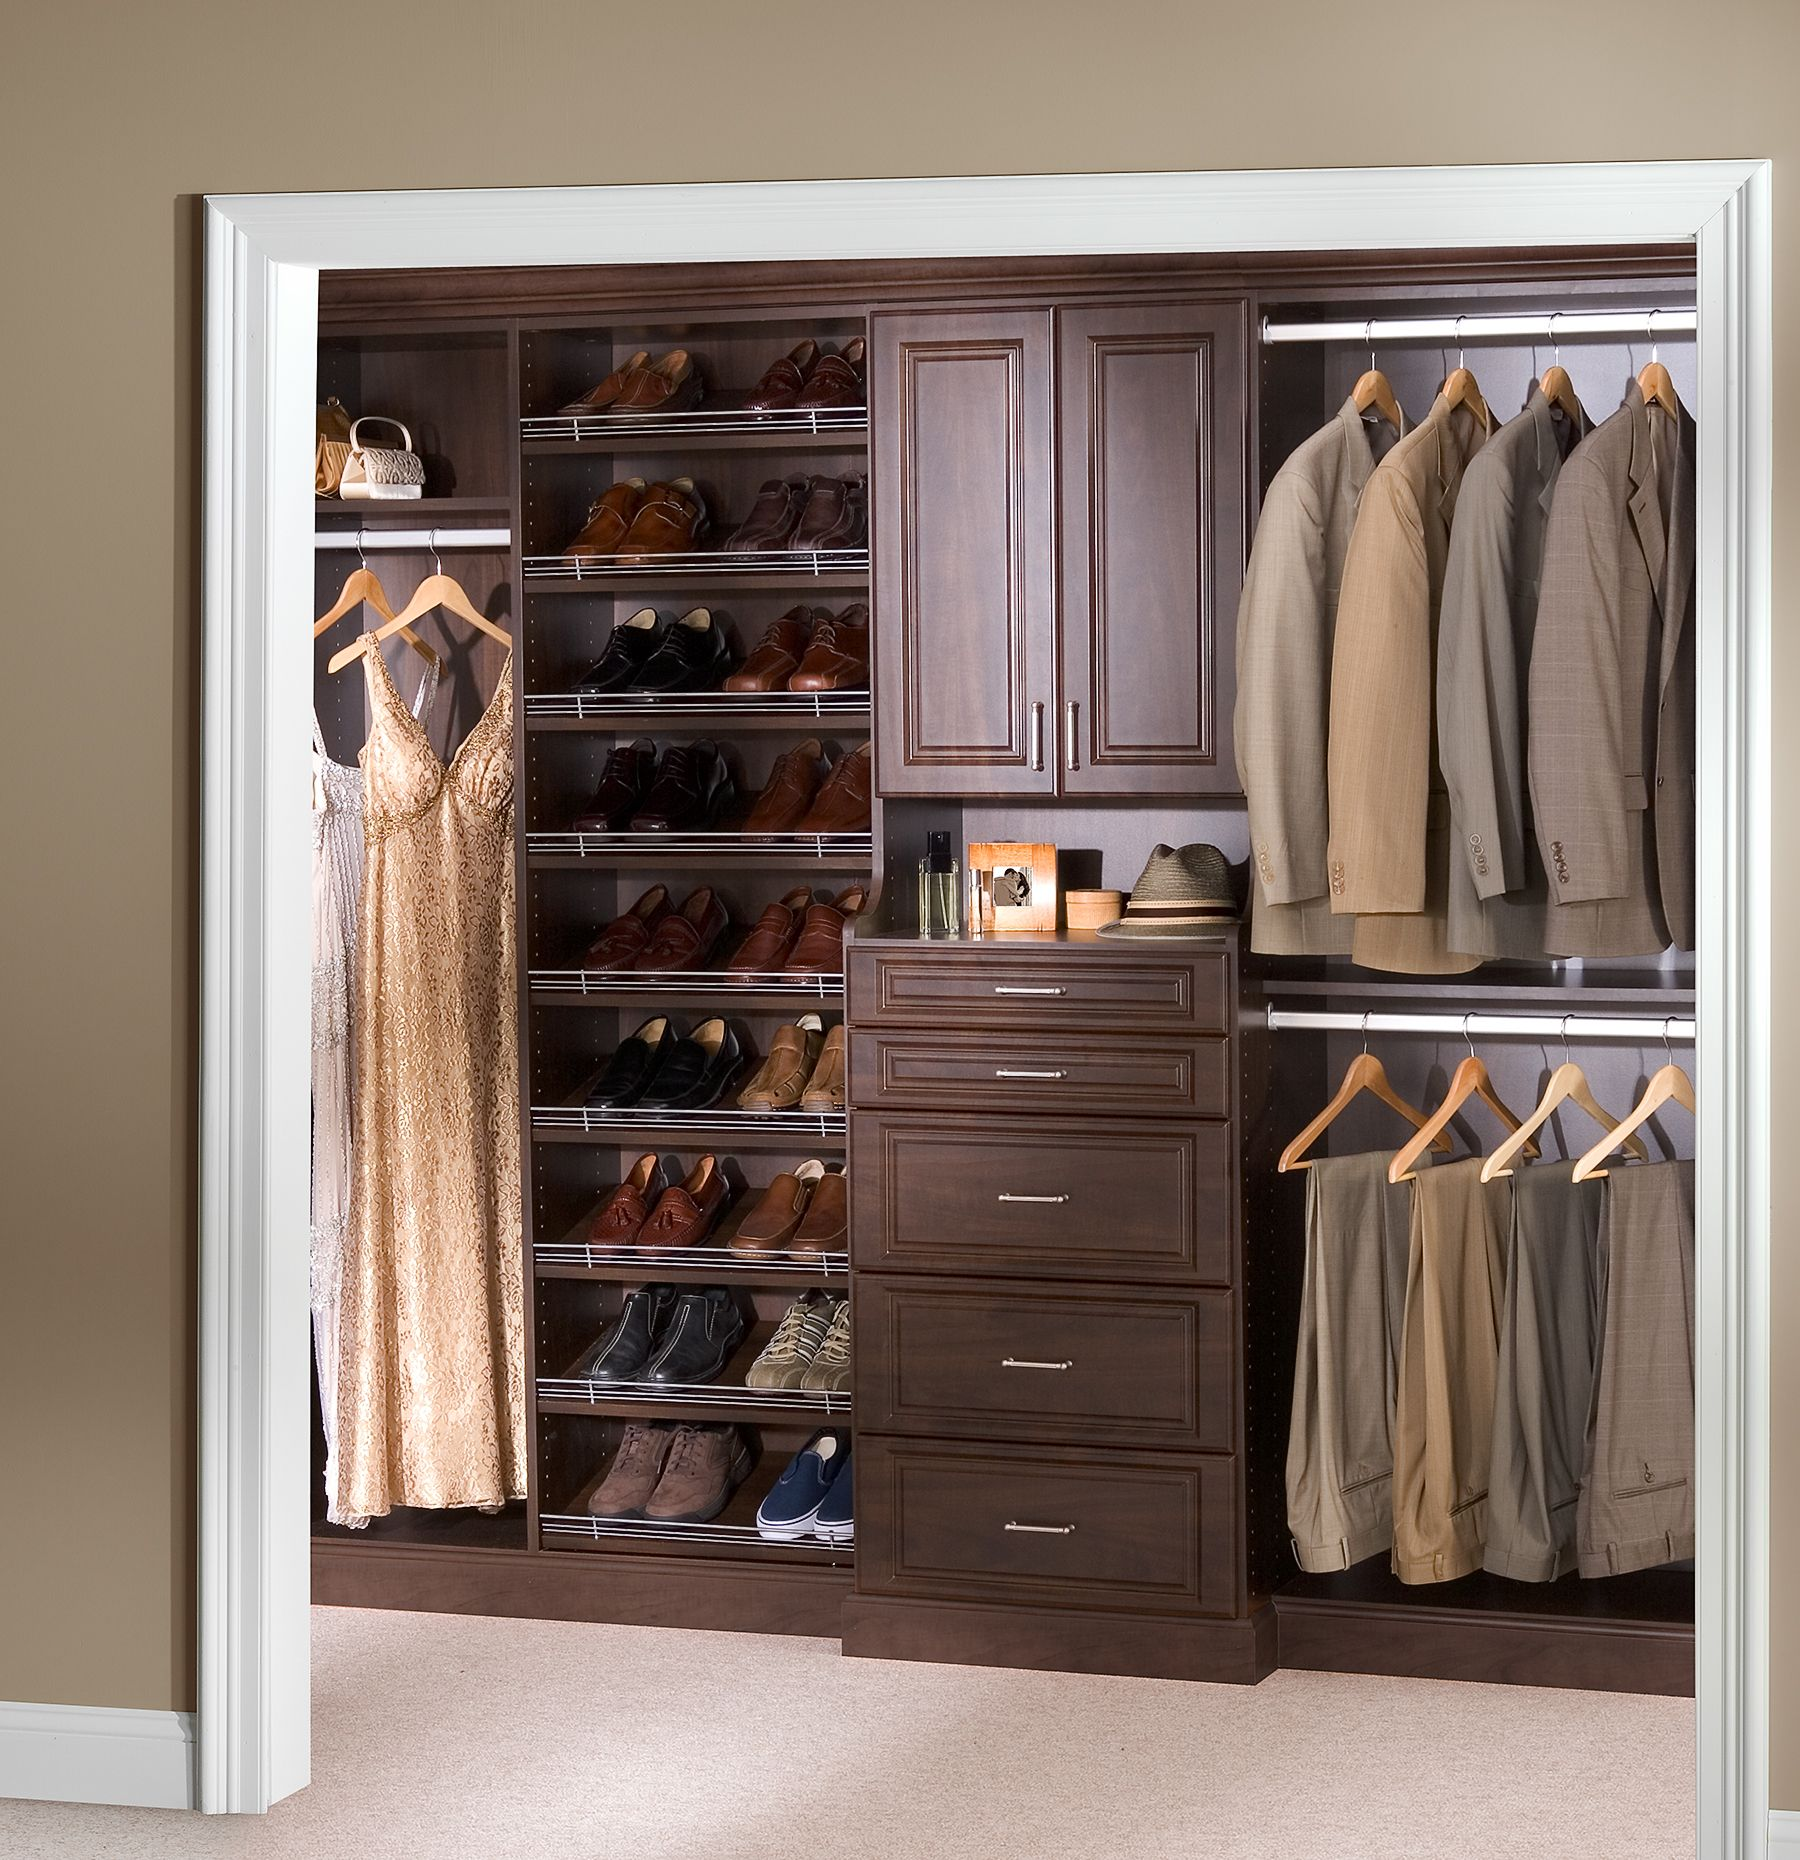 closet organization systems. | o r g a n i z e | pinterest